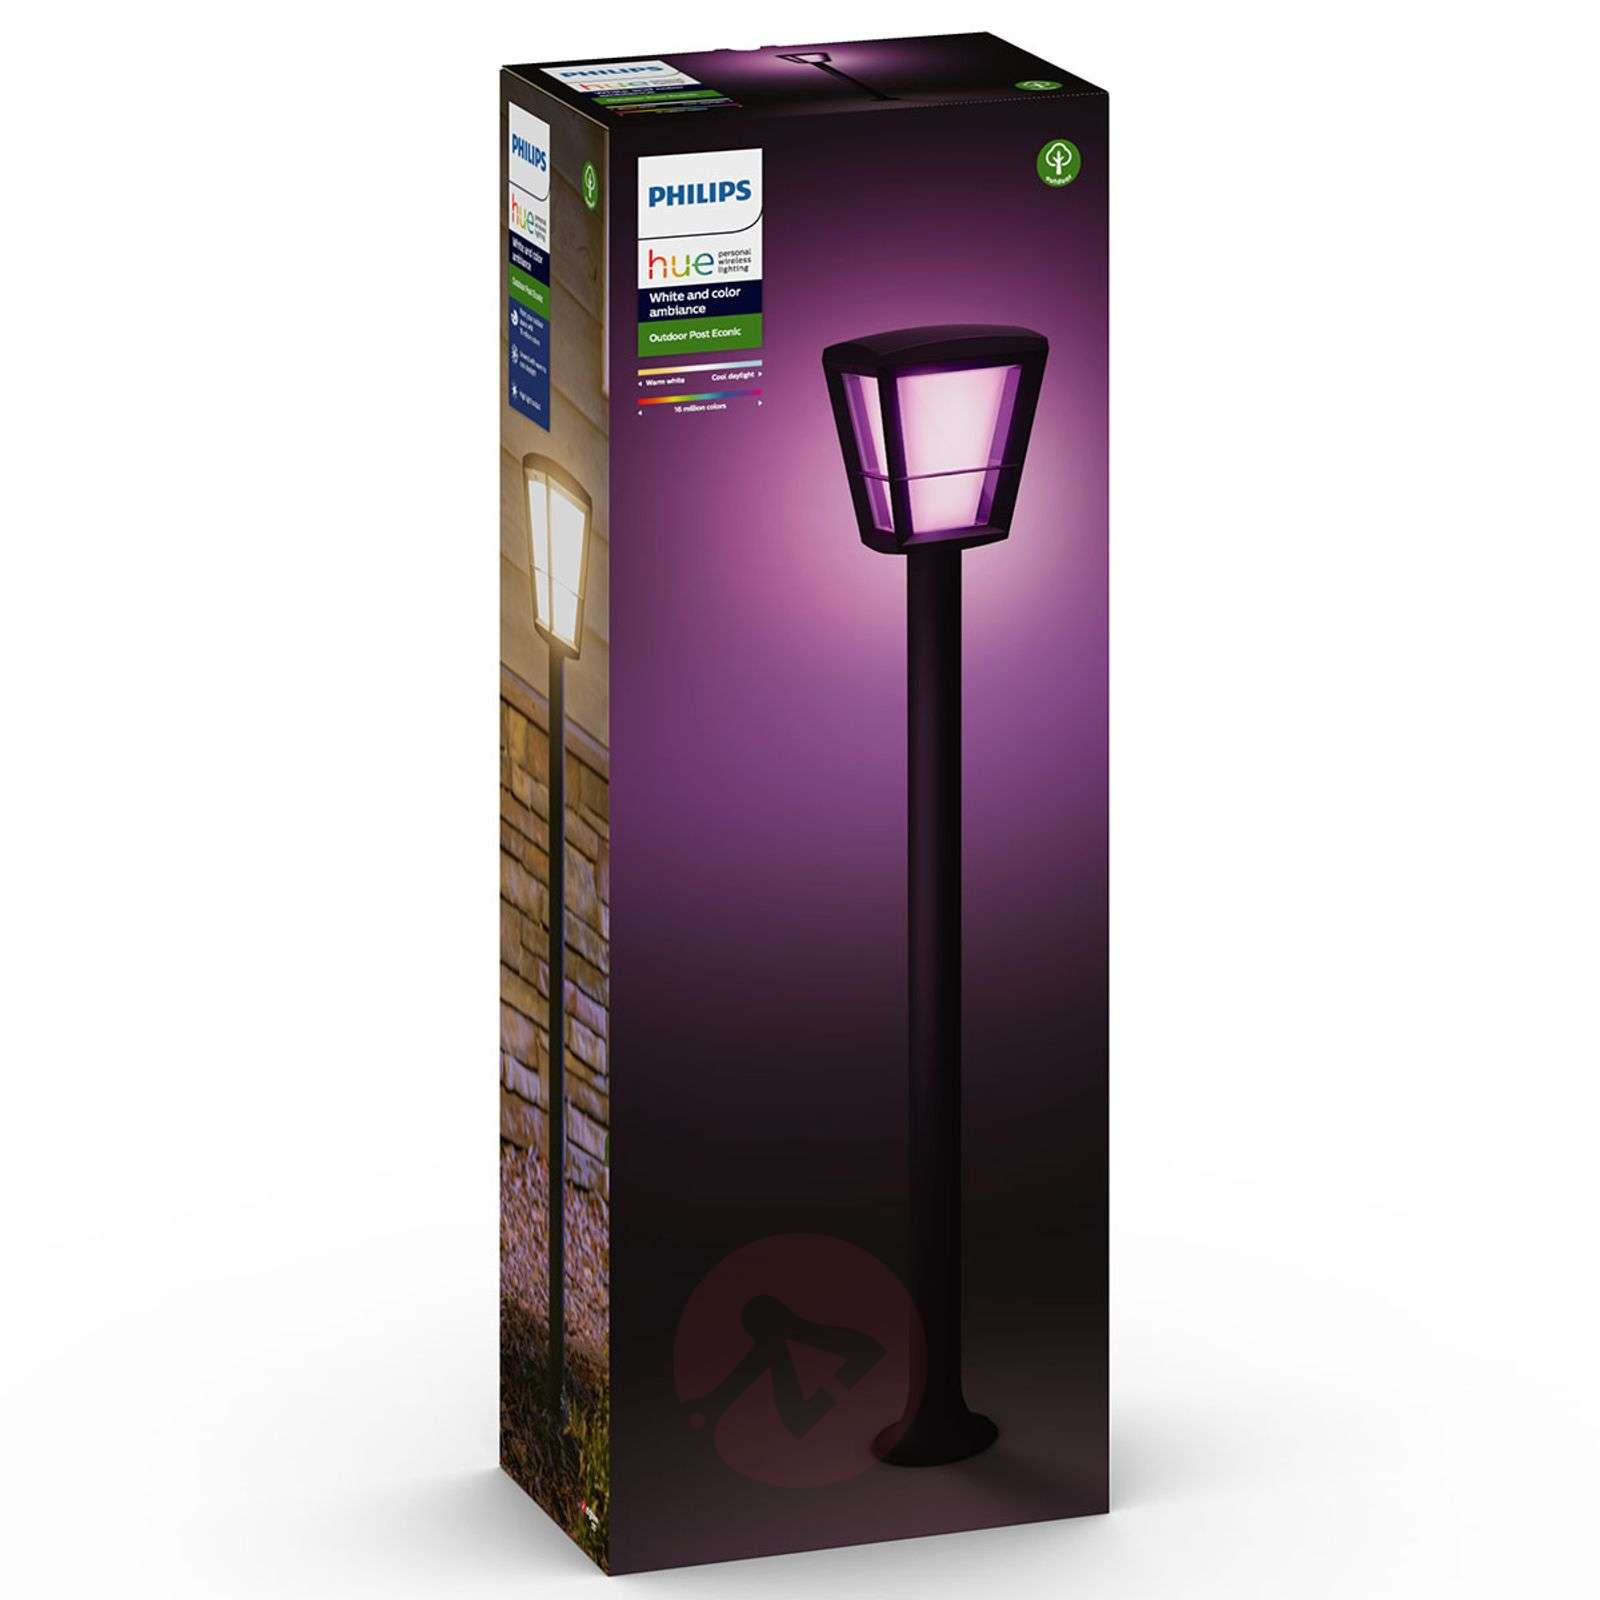 Philips Hue White+Color Econic słupek ogrodowy LED-7534120-02